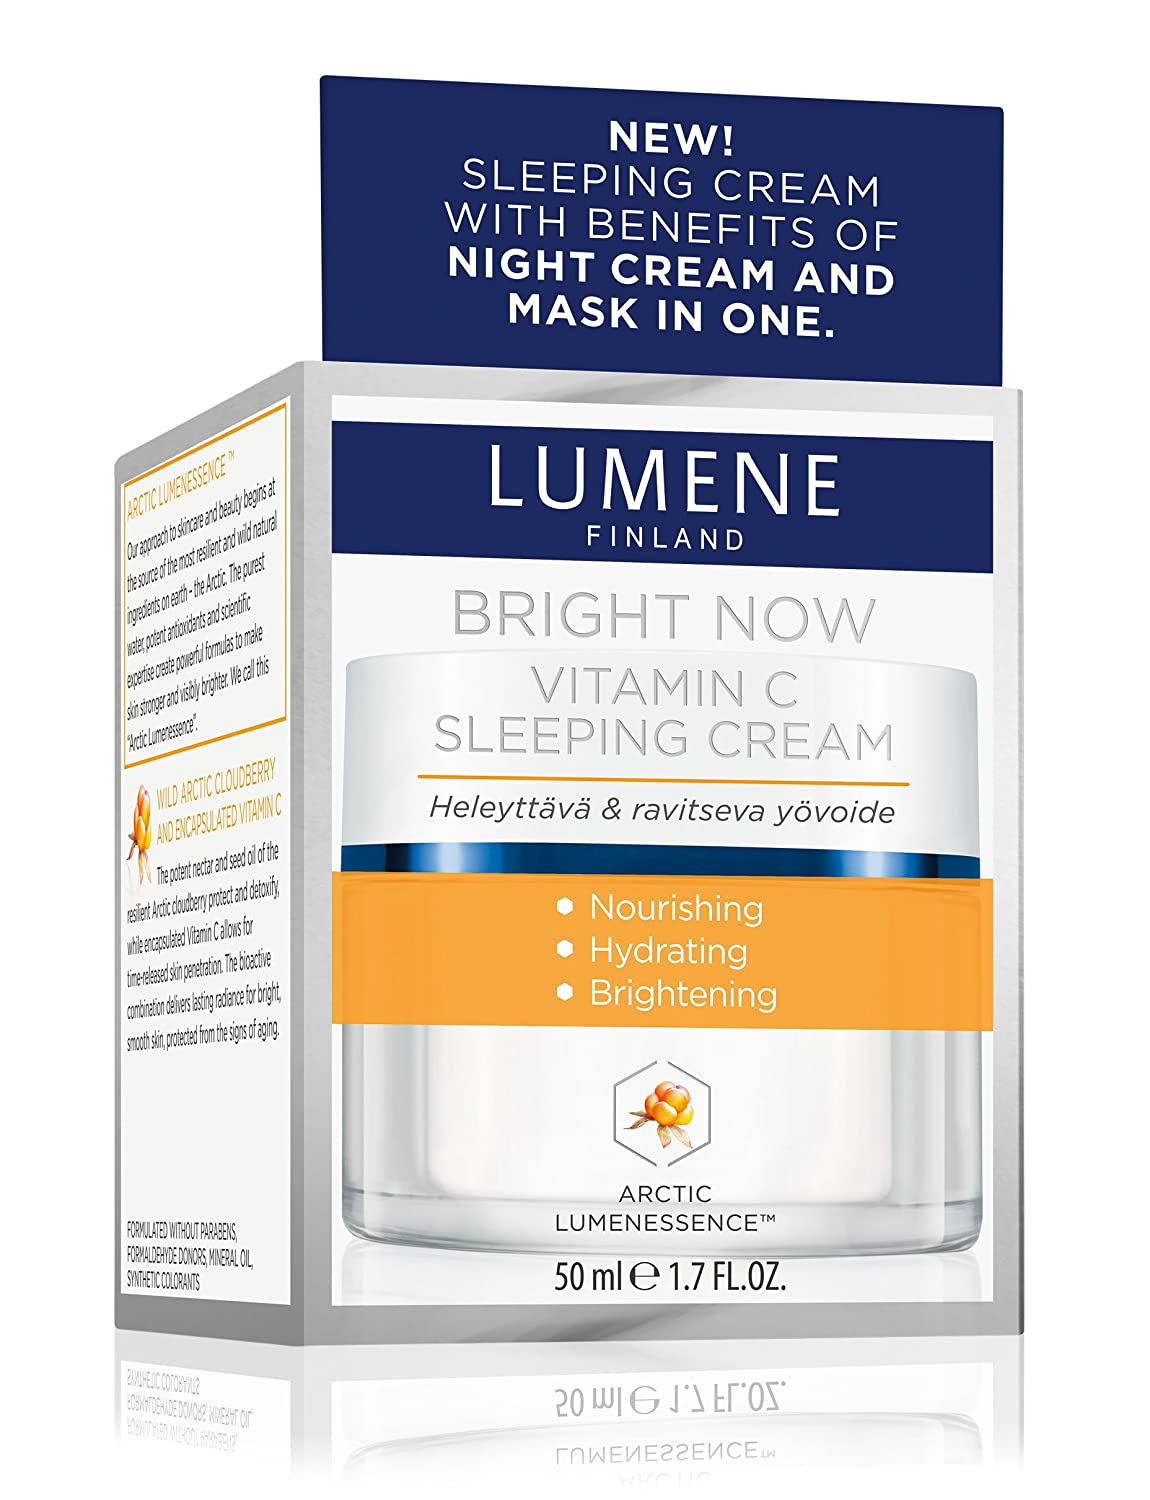 Lumene Bright Now Vitamin C Sleeping Cream 1.7 Fl.Oz. 50ml